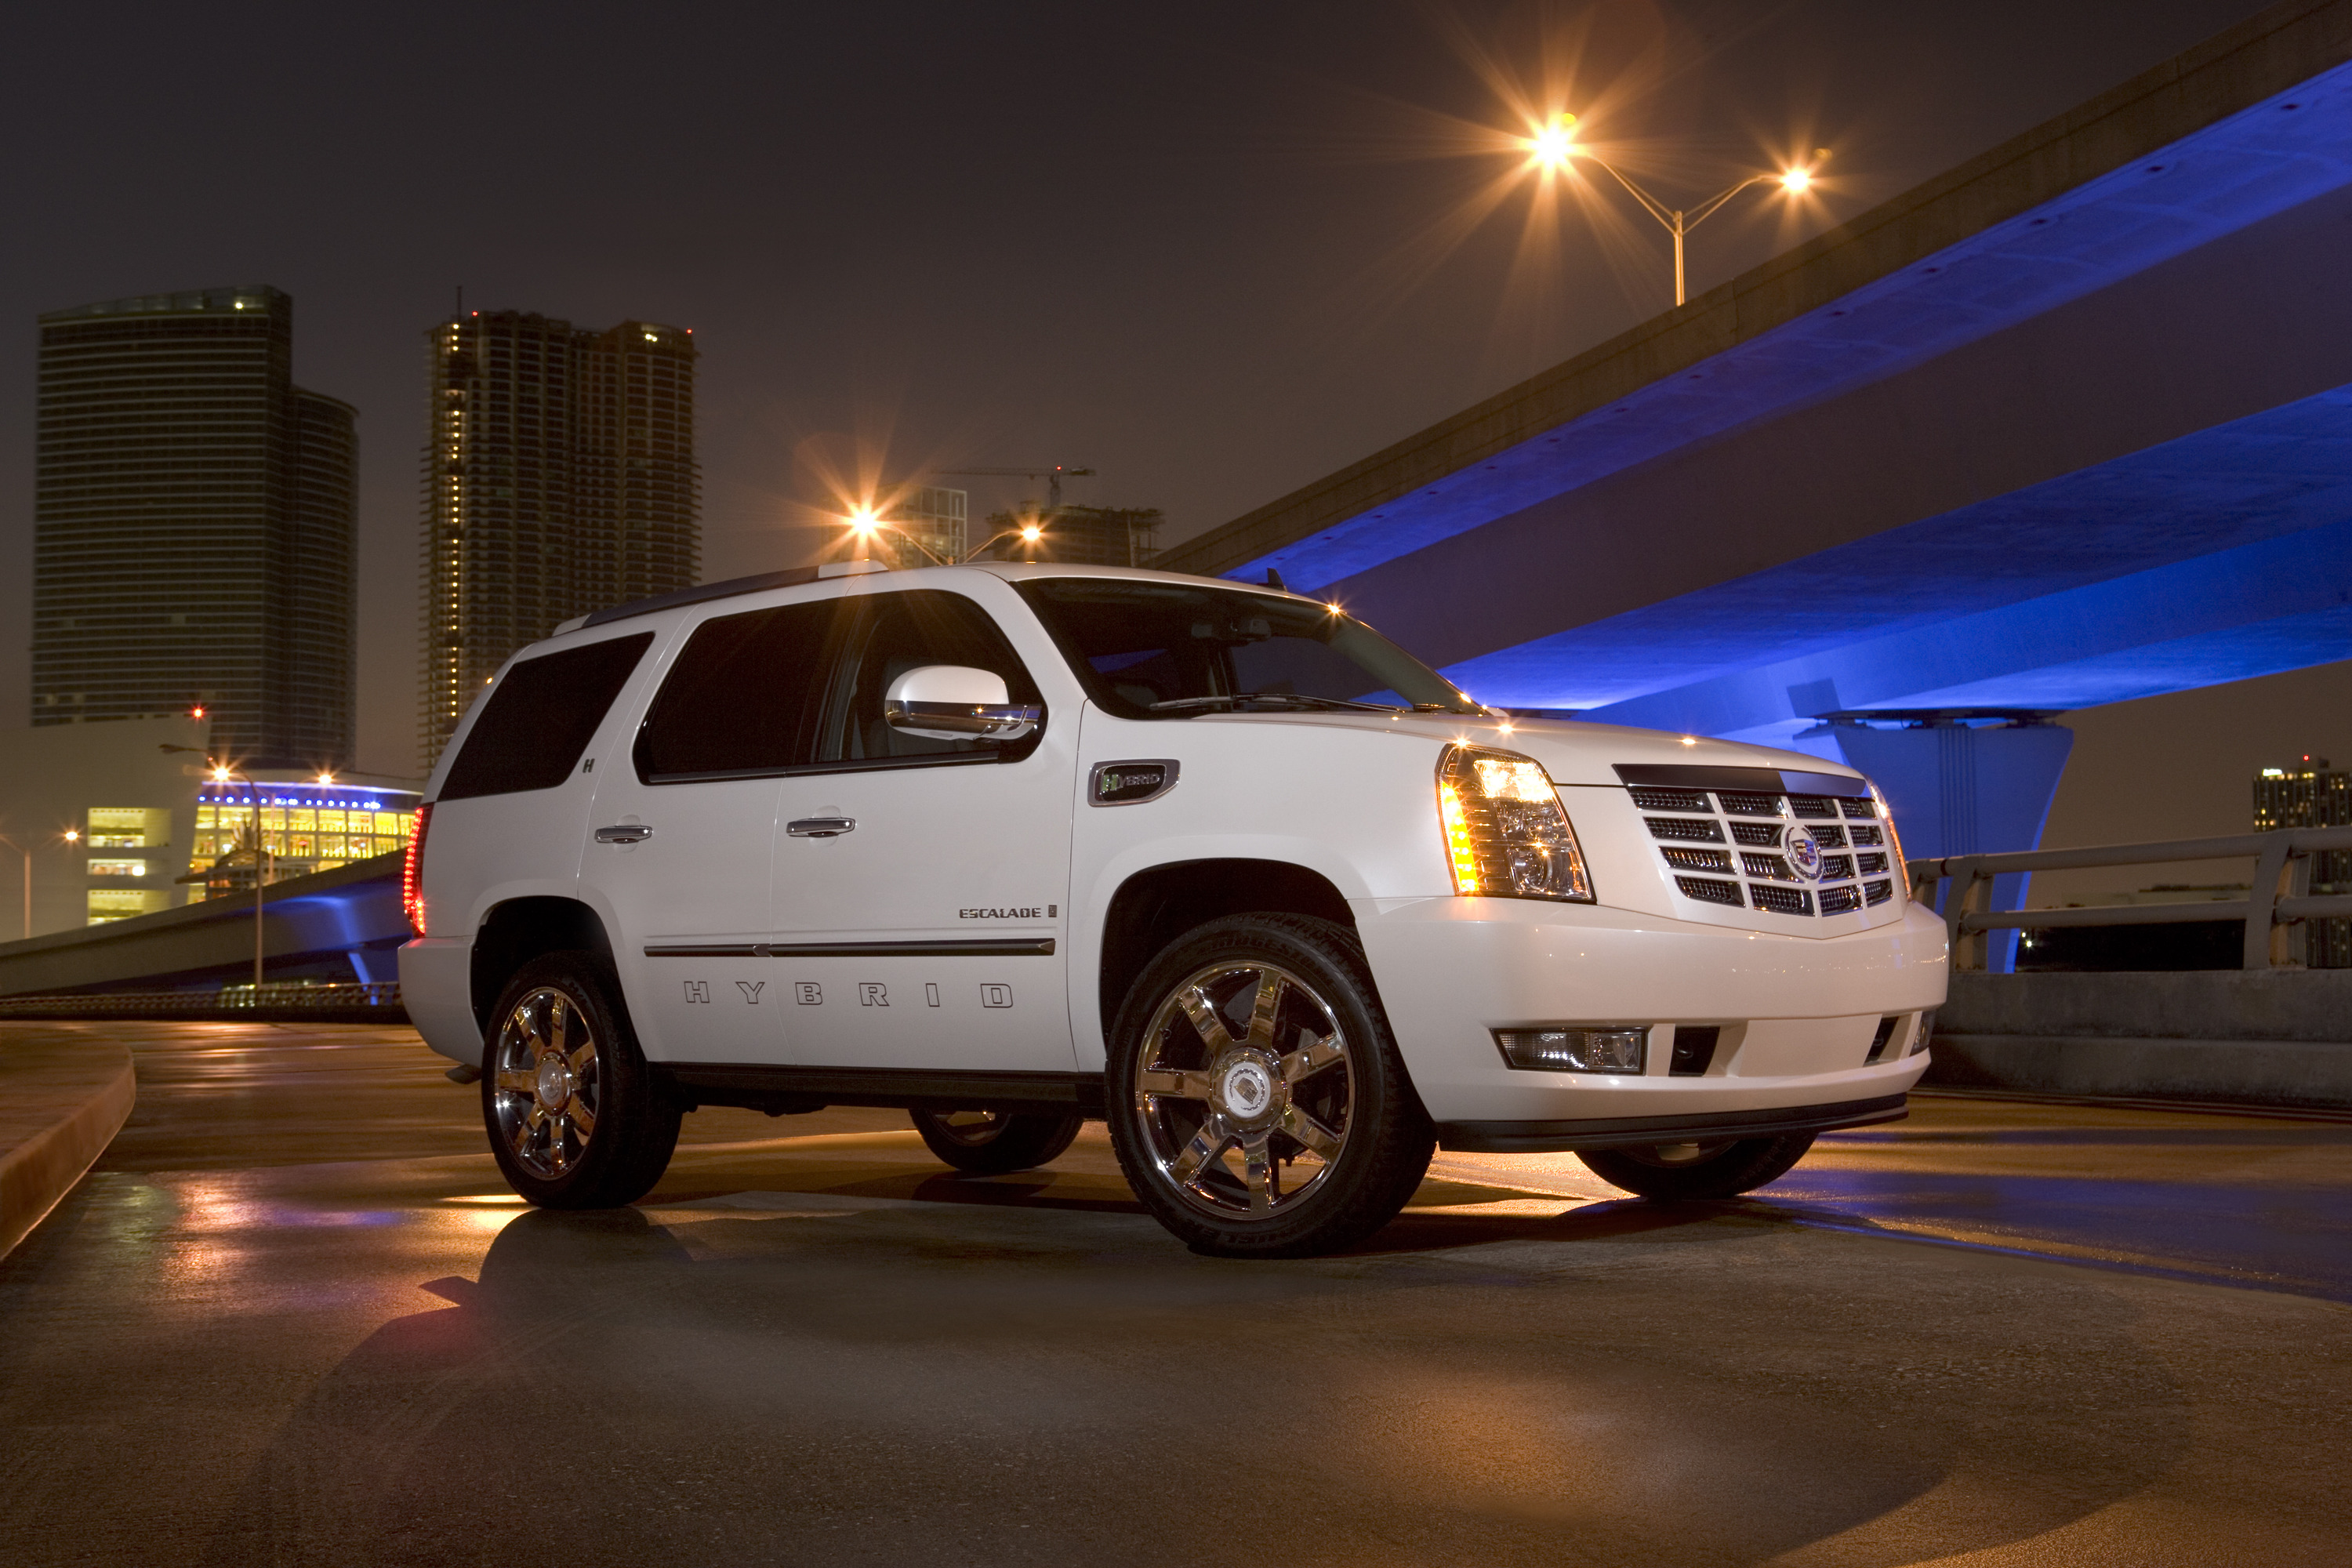 The Cadillac Escalade tops the HLDI's list of most frequently stolen vehicle.